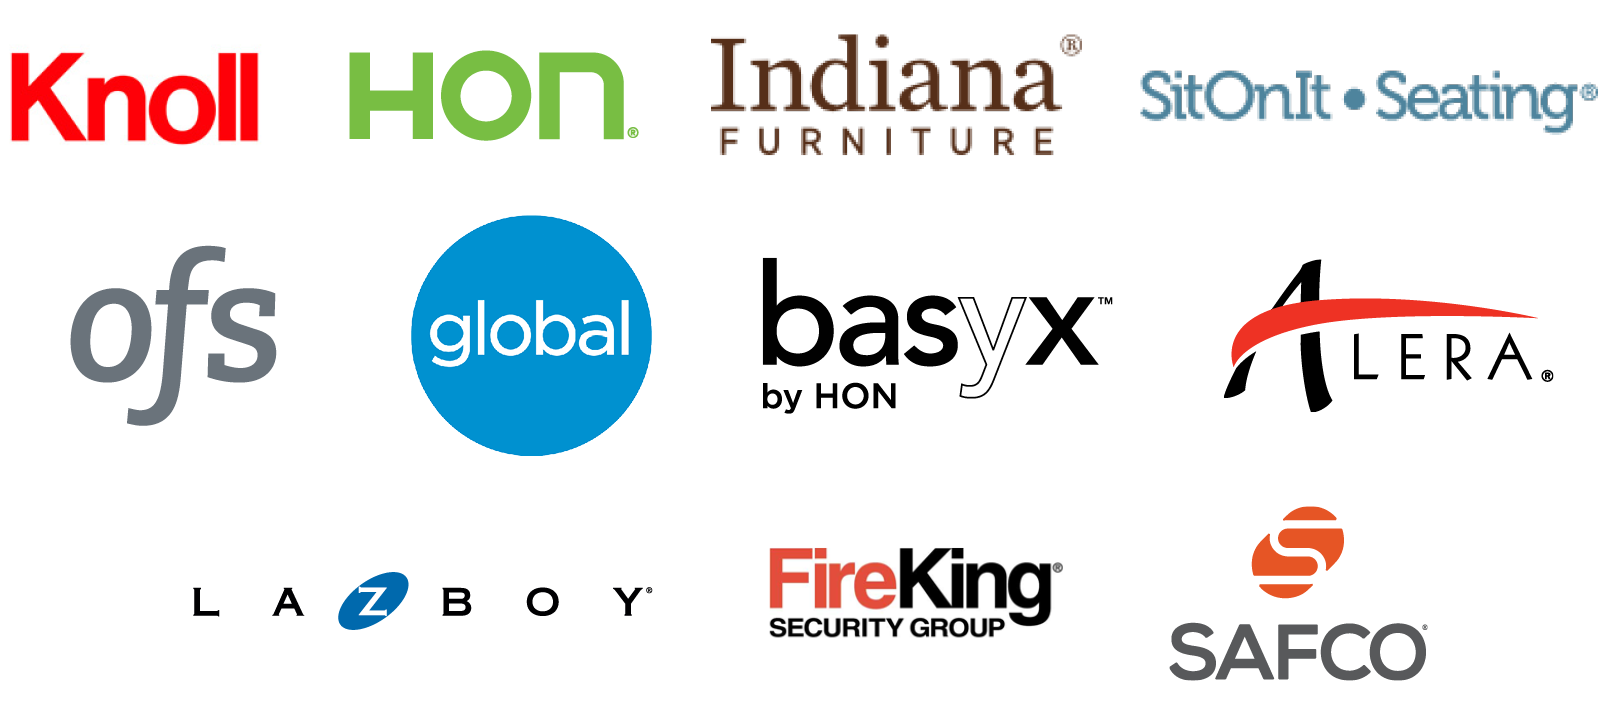 Knoll HON Indiana Furniture SitOnIt Seating OFS Brands Global Basyx Alera La-Z-Boy FireKing Security Safco and more